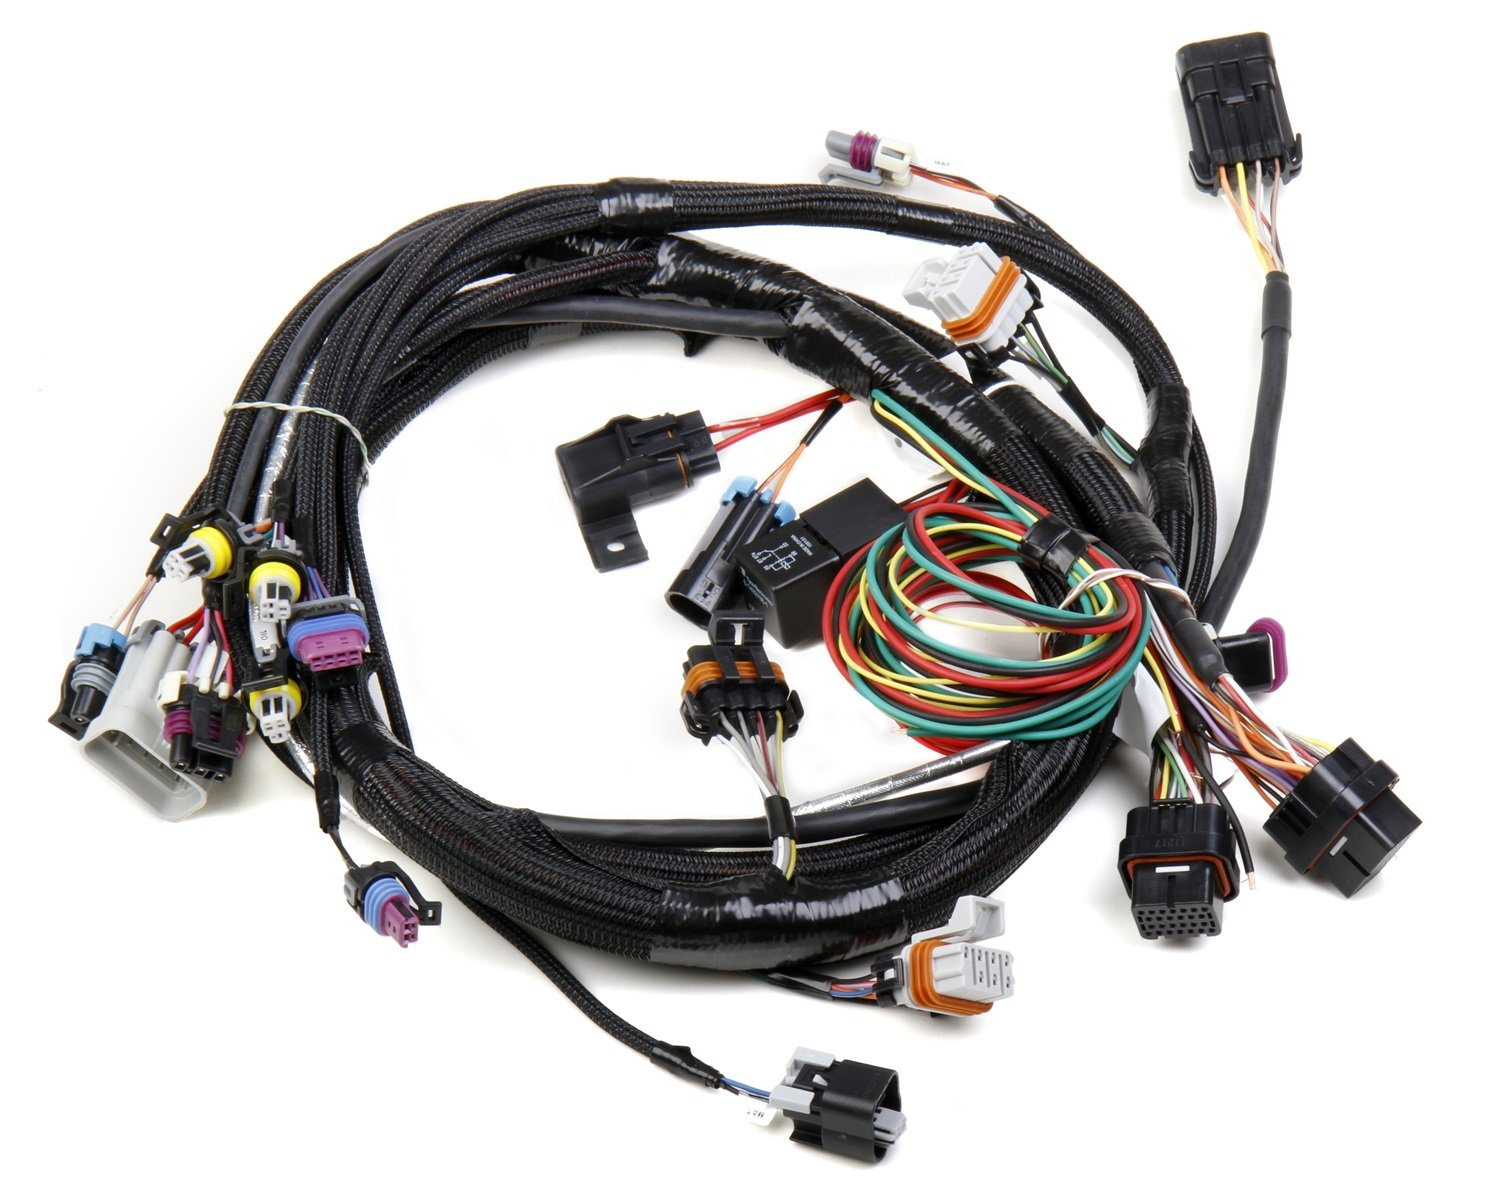 71R9M48Oc L._SL1500_ amazon com holley 558 102 ls1 main harness automotive 6.5 Diesel Wiring Harness at couponss.co